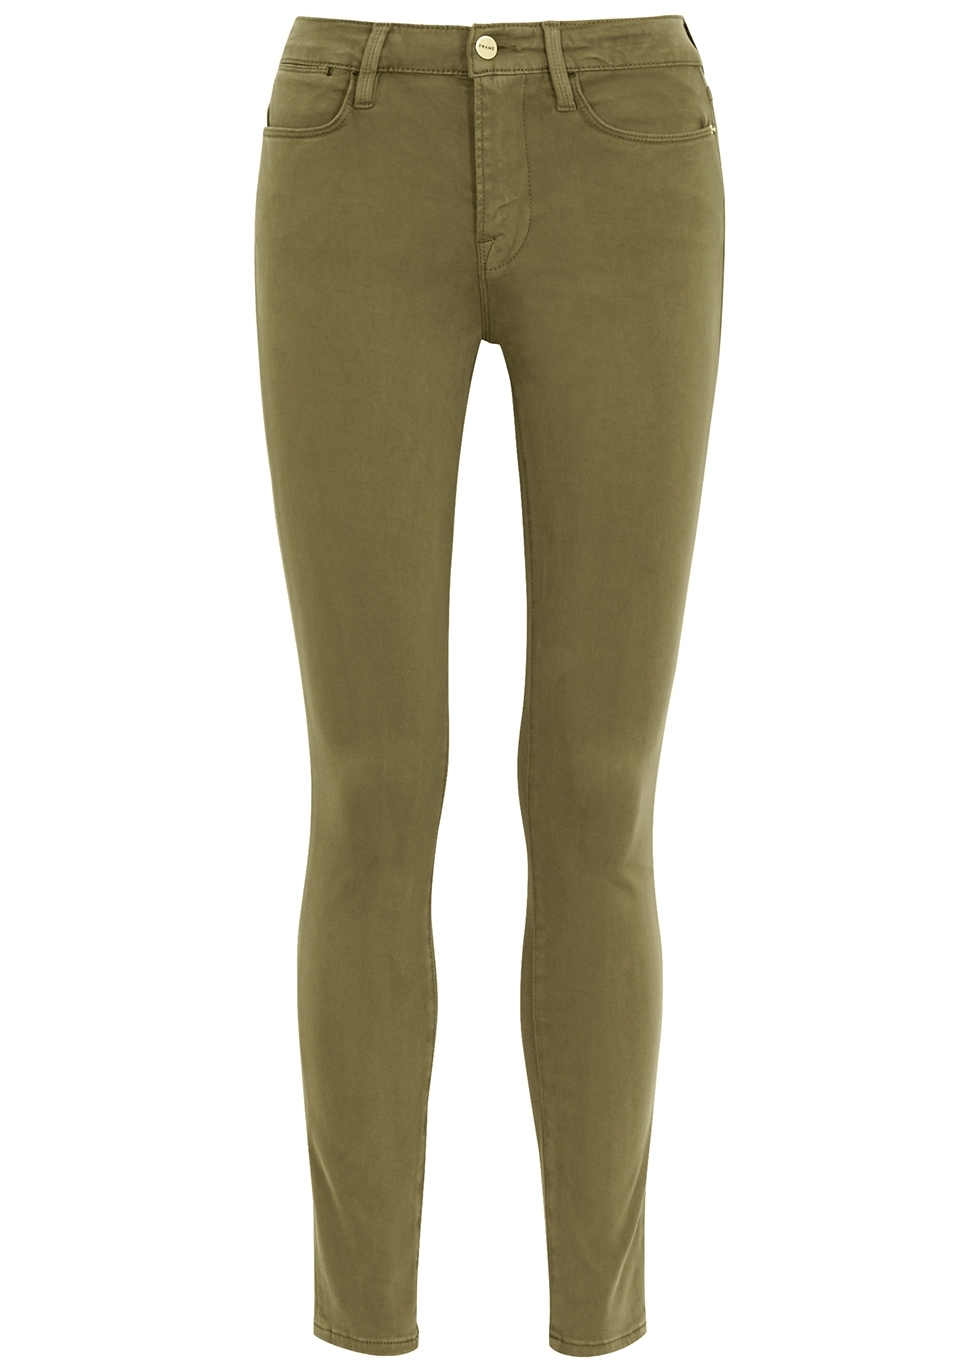 Le High skinny green jeans